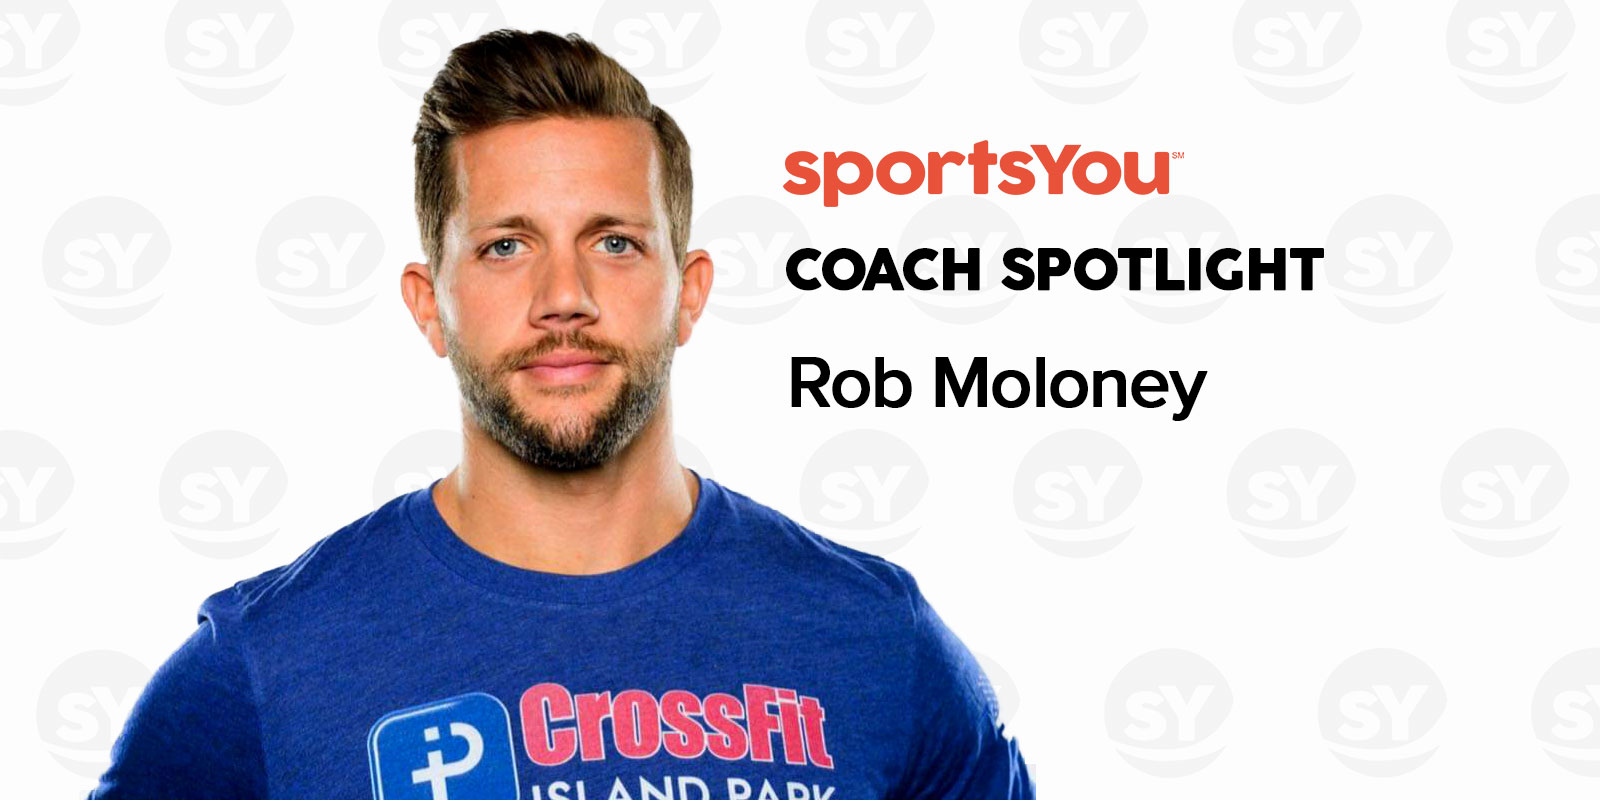 sportsYou Coach Spotlight: Q&A with Coach Rob Moloney - Photo by sportsYou Photography